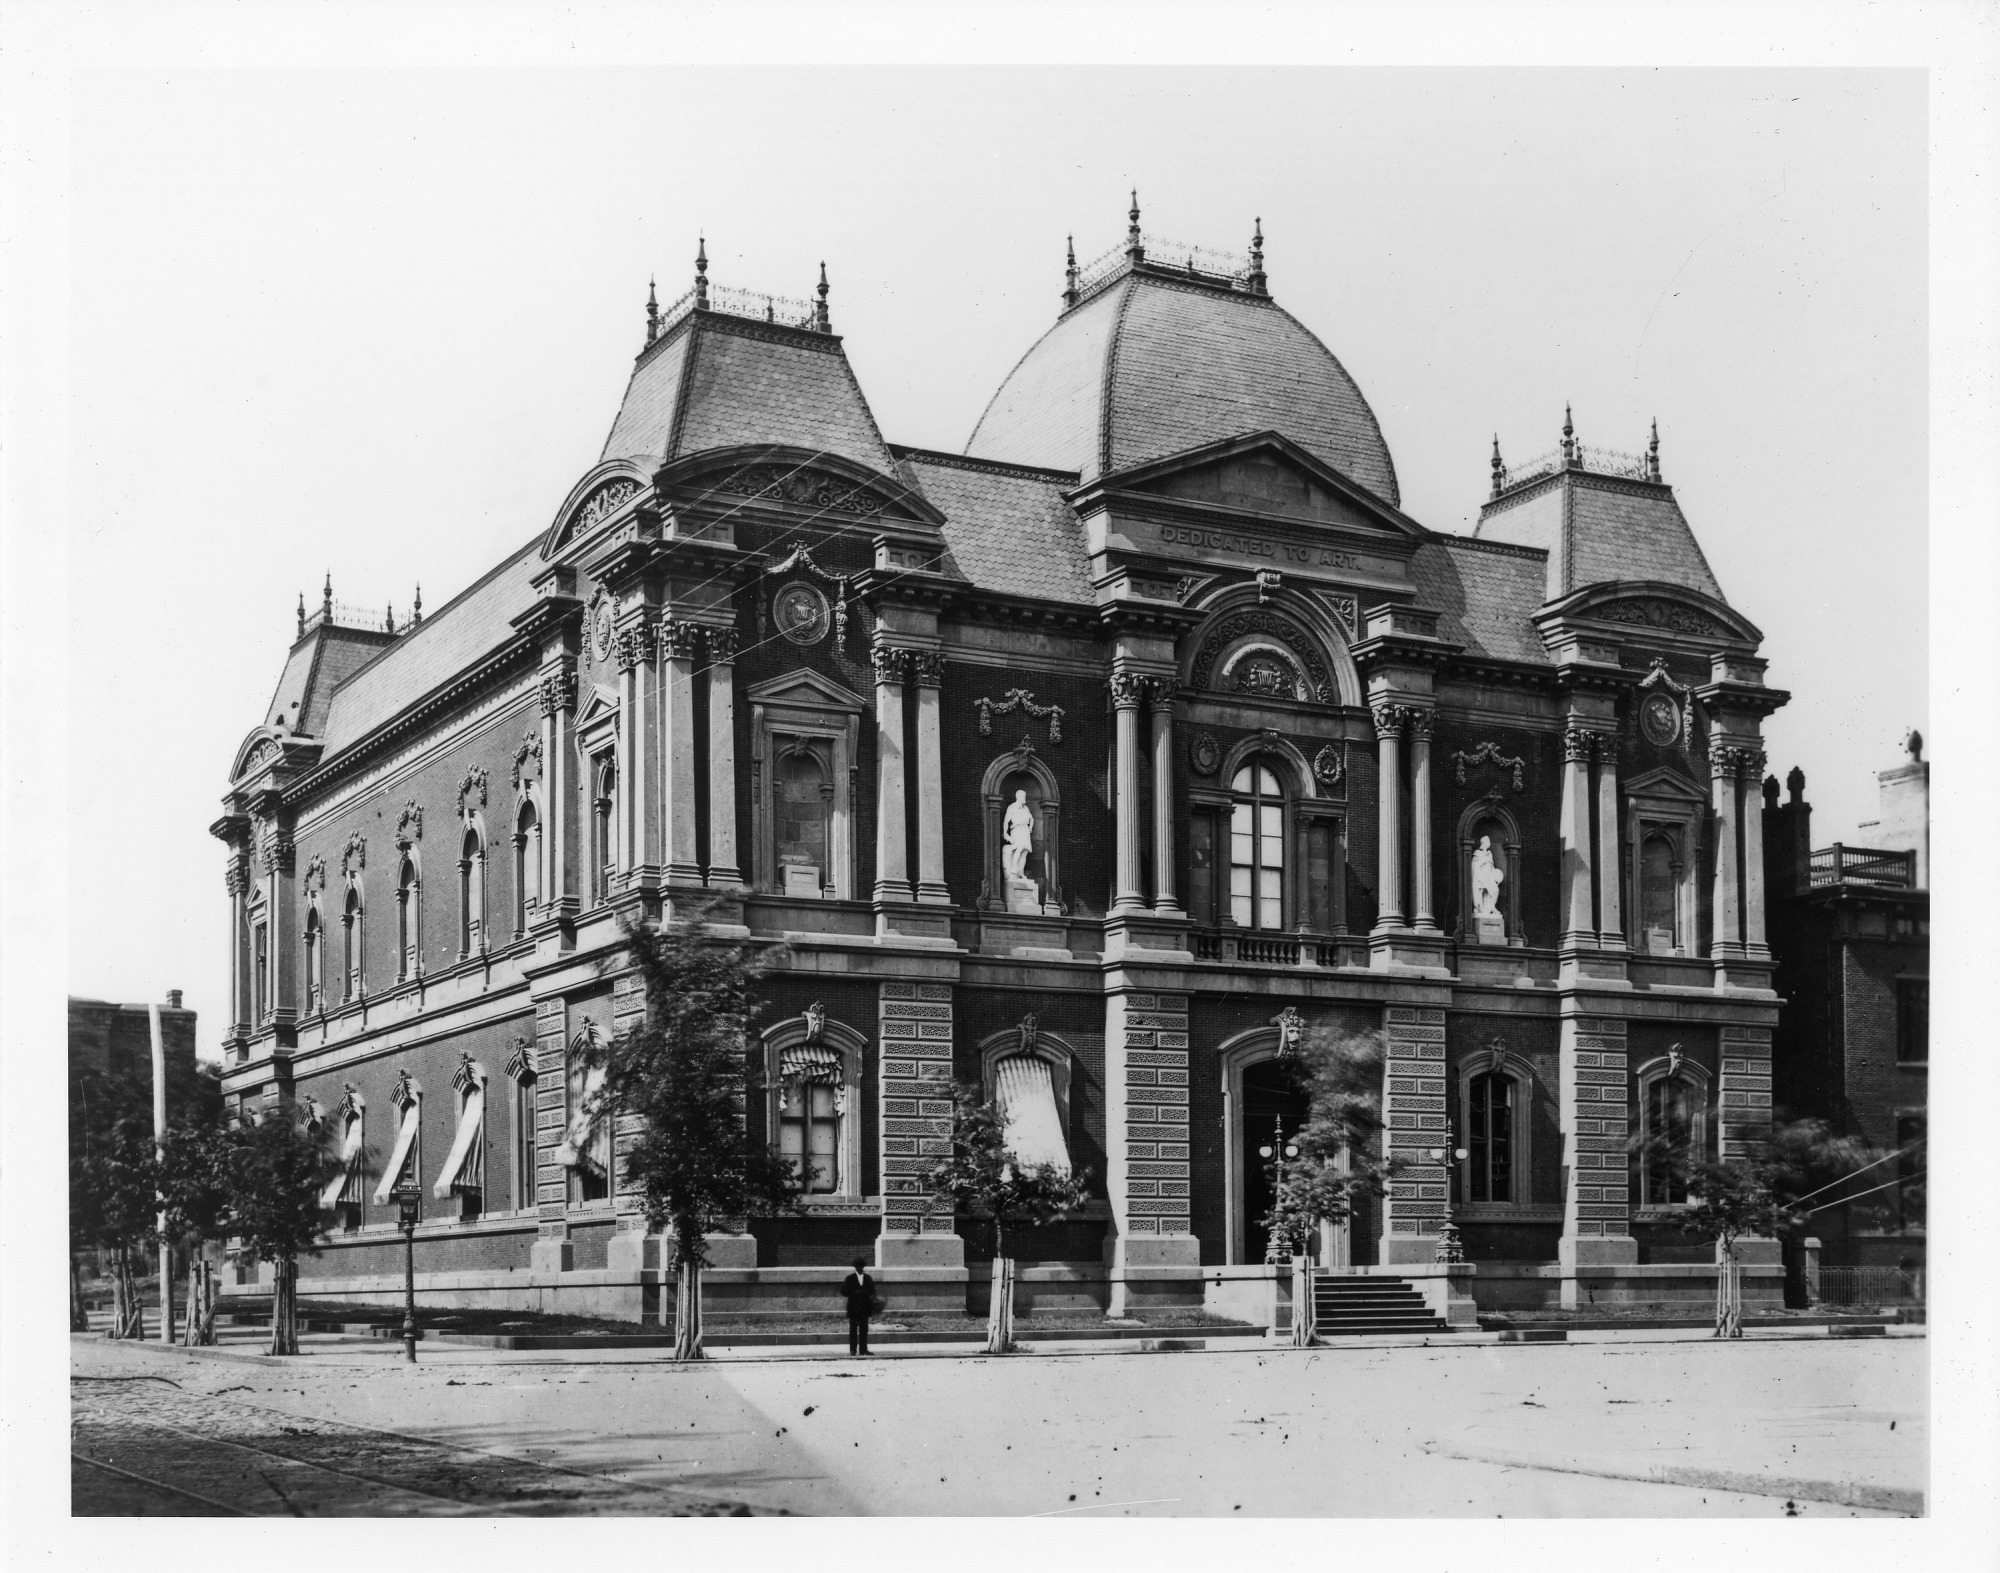 Aug 22 Exterior of Renwick Gallery (19th c.)